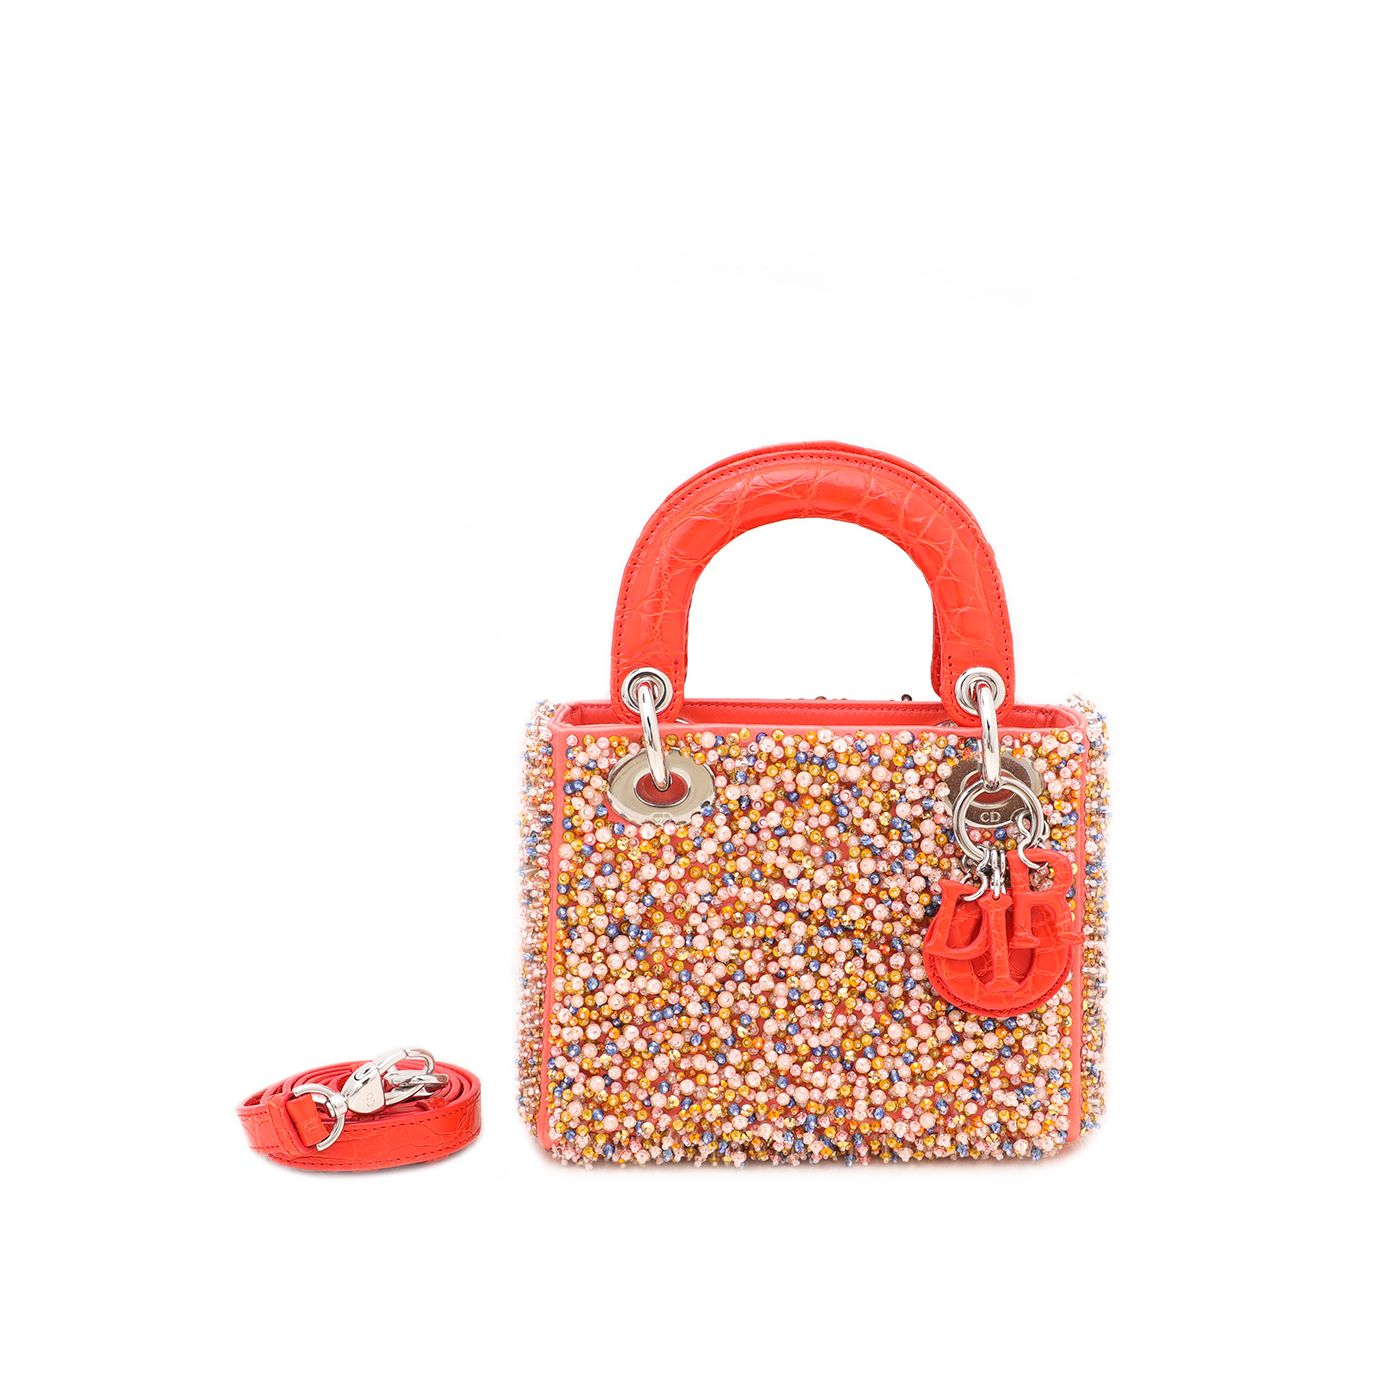 Christian Dior Orange Satin Lady Dior Beaded Croco Handle Bag